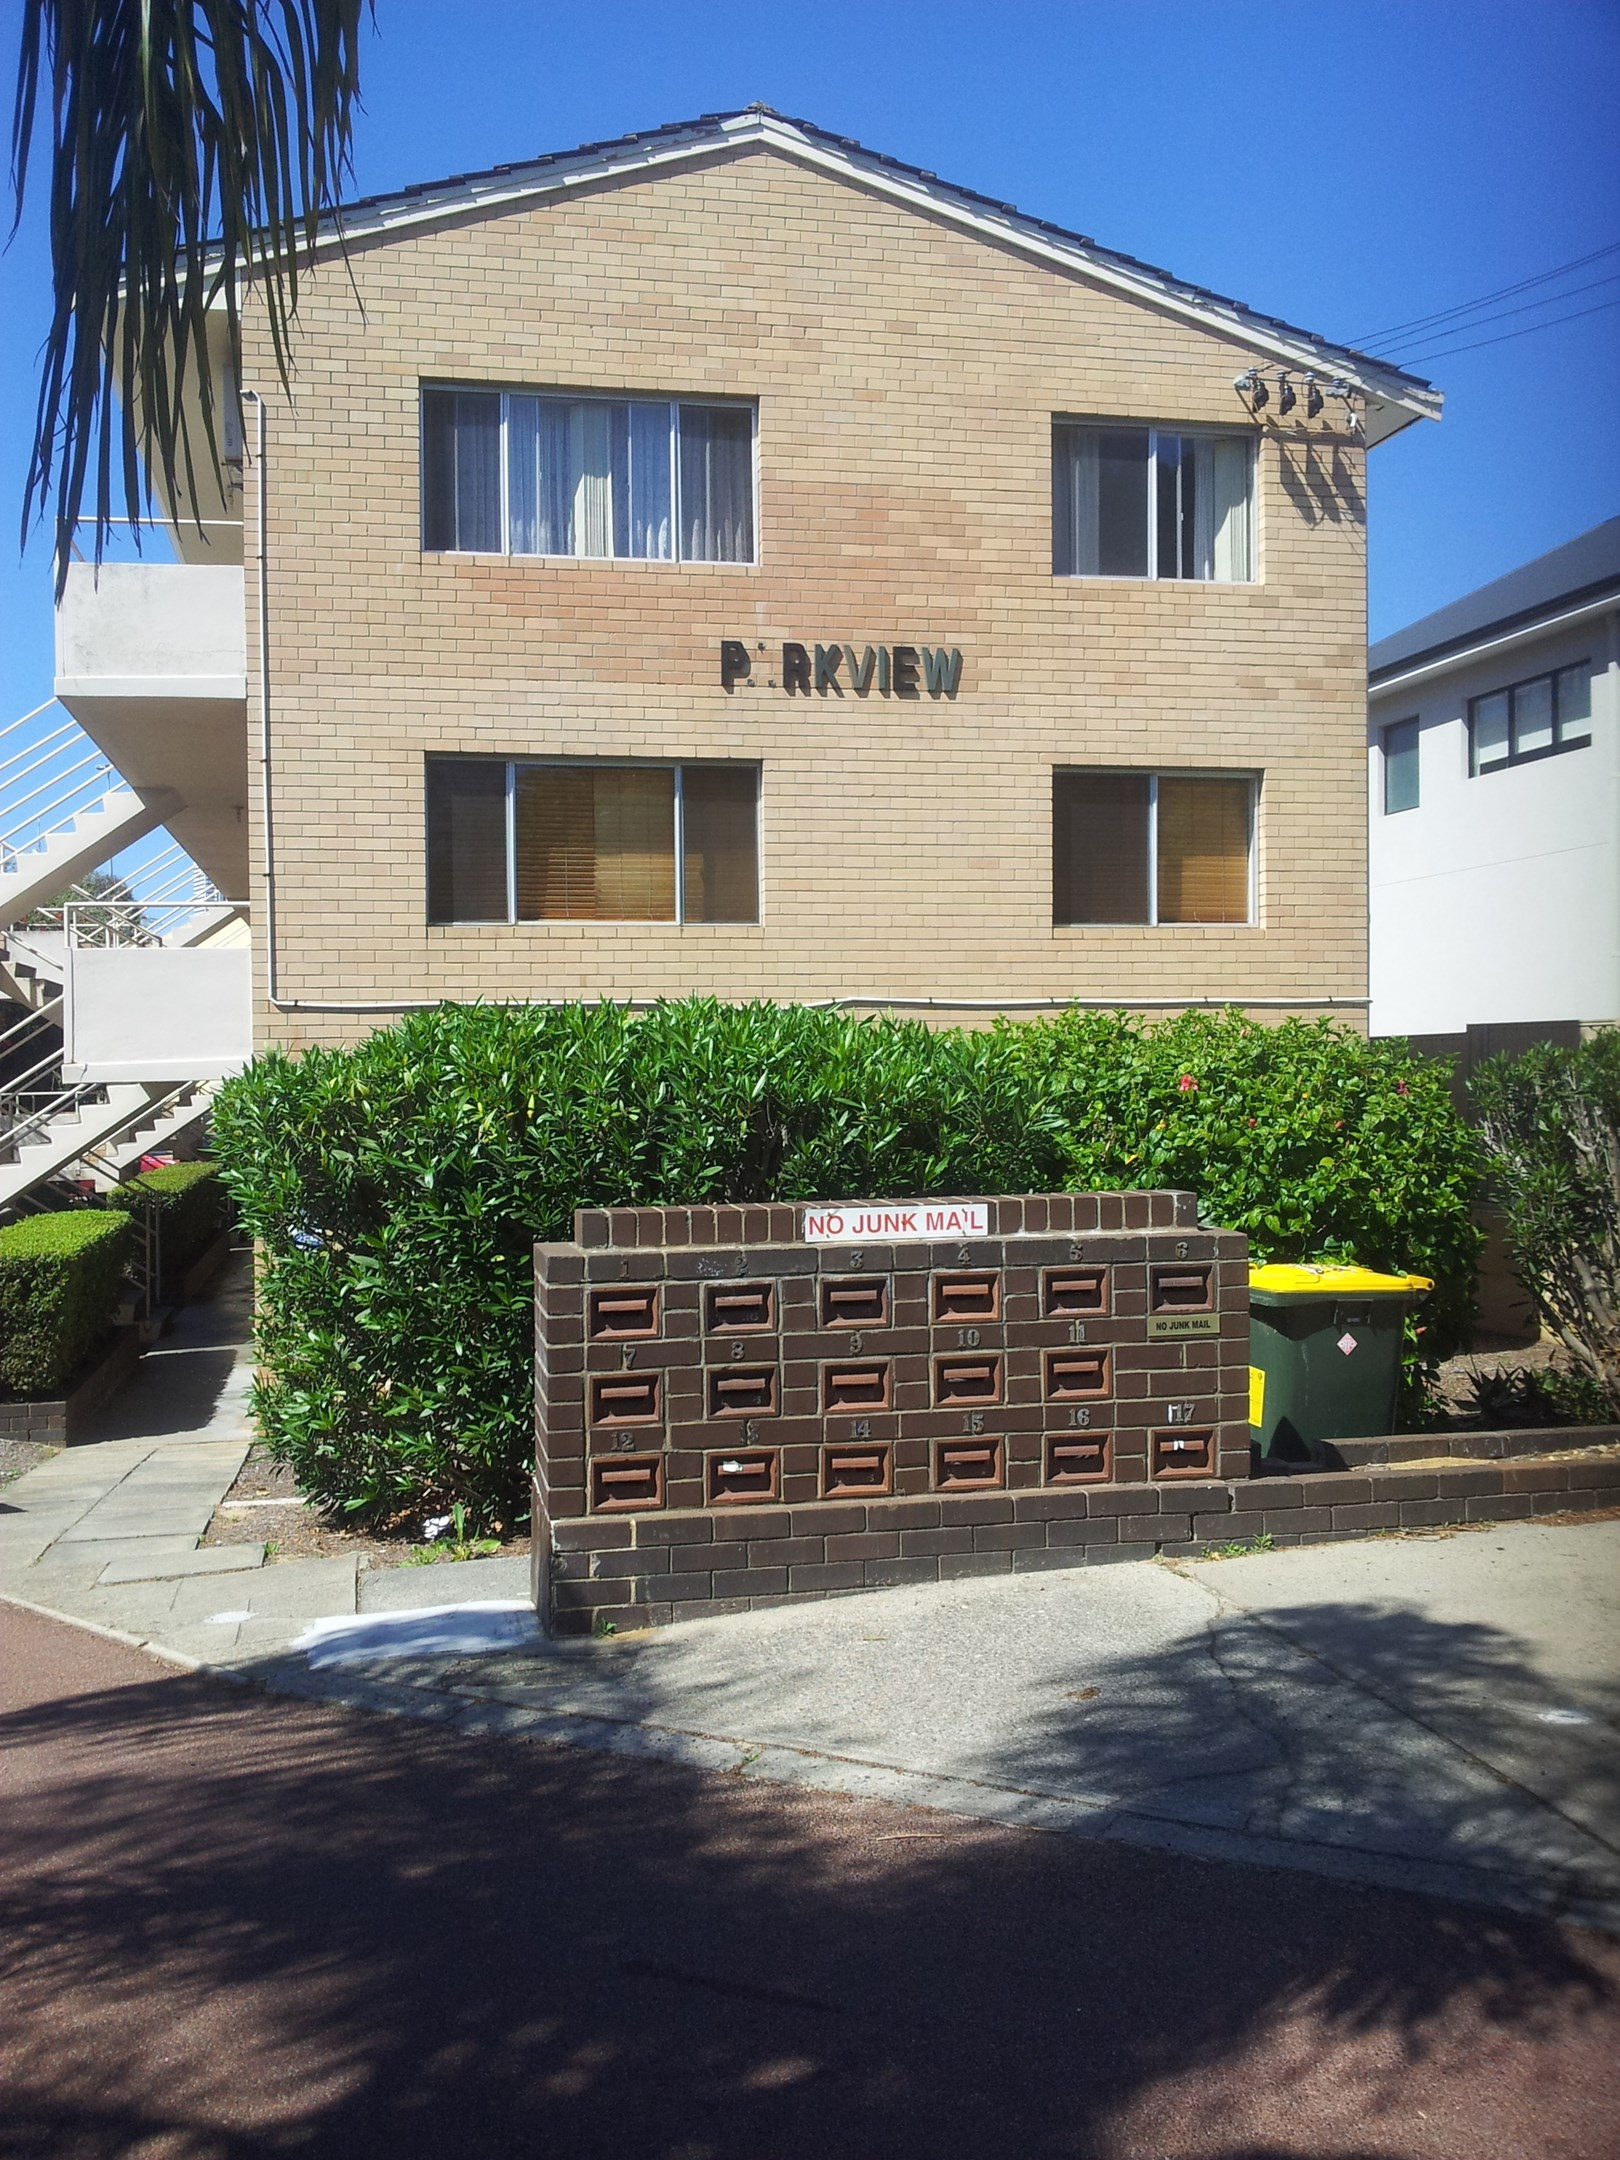 5/9 Violet, West Perth WA 6005 - Apartment For Rent - $250 ...